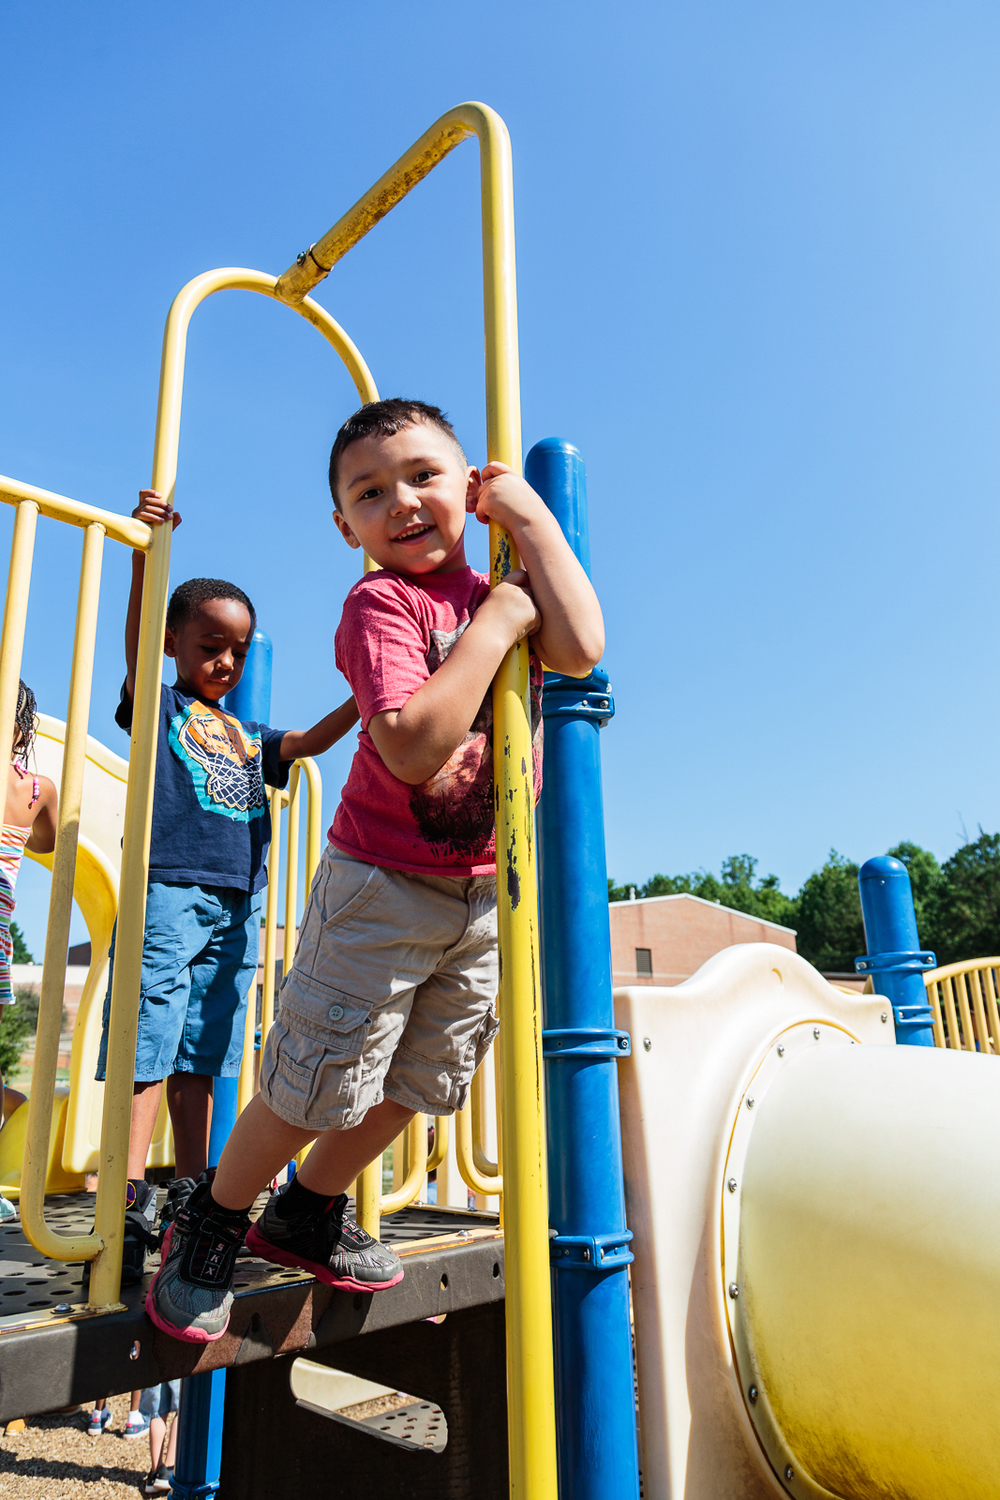 McKendree_KinderCamp-84_playground.jpg